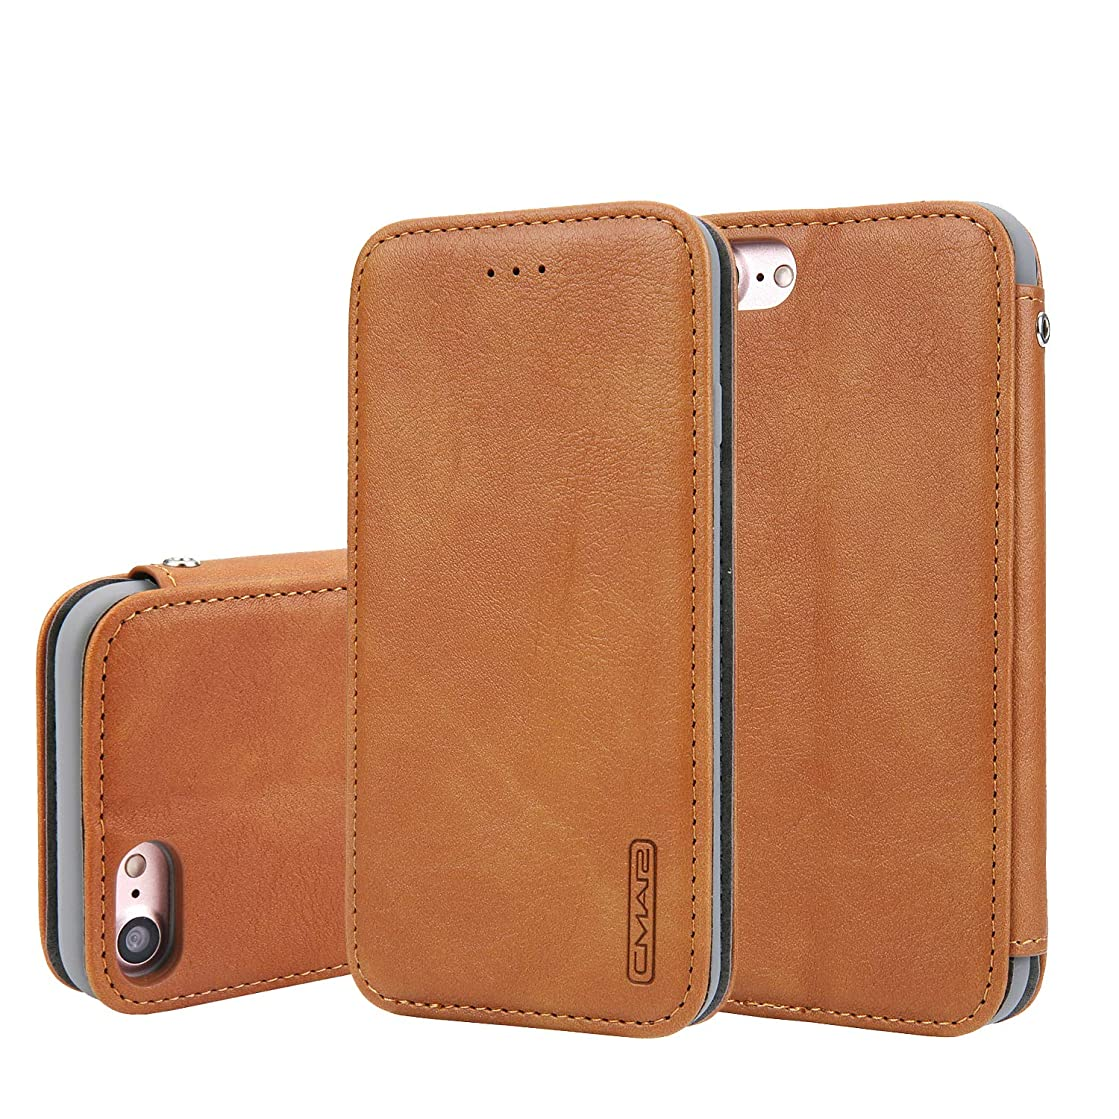 Phone Cover for iPhone 8 2019 Leather,4.7inch Holder Slim Brown Card Slot (ID Card,Credit Card) Flip Shell Accurate Cutouts Full Protection Gift Girls Boys Unisex